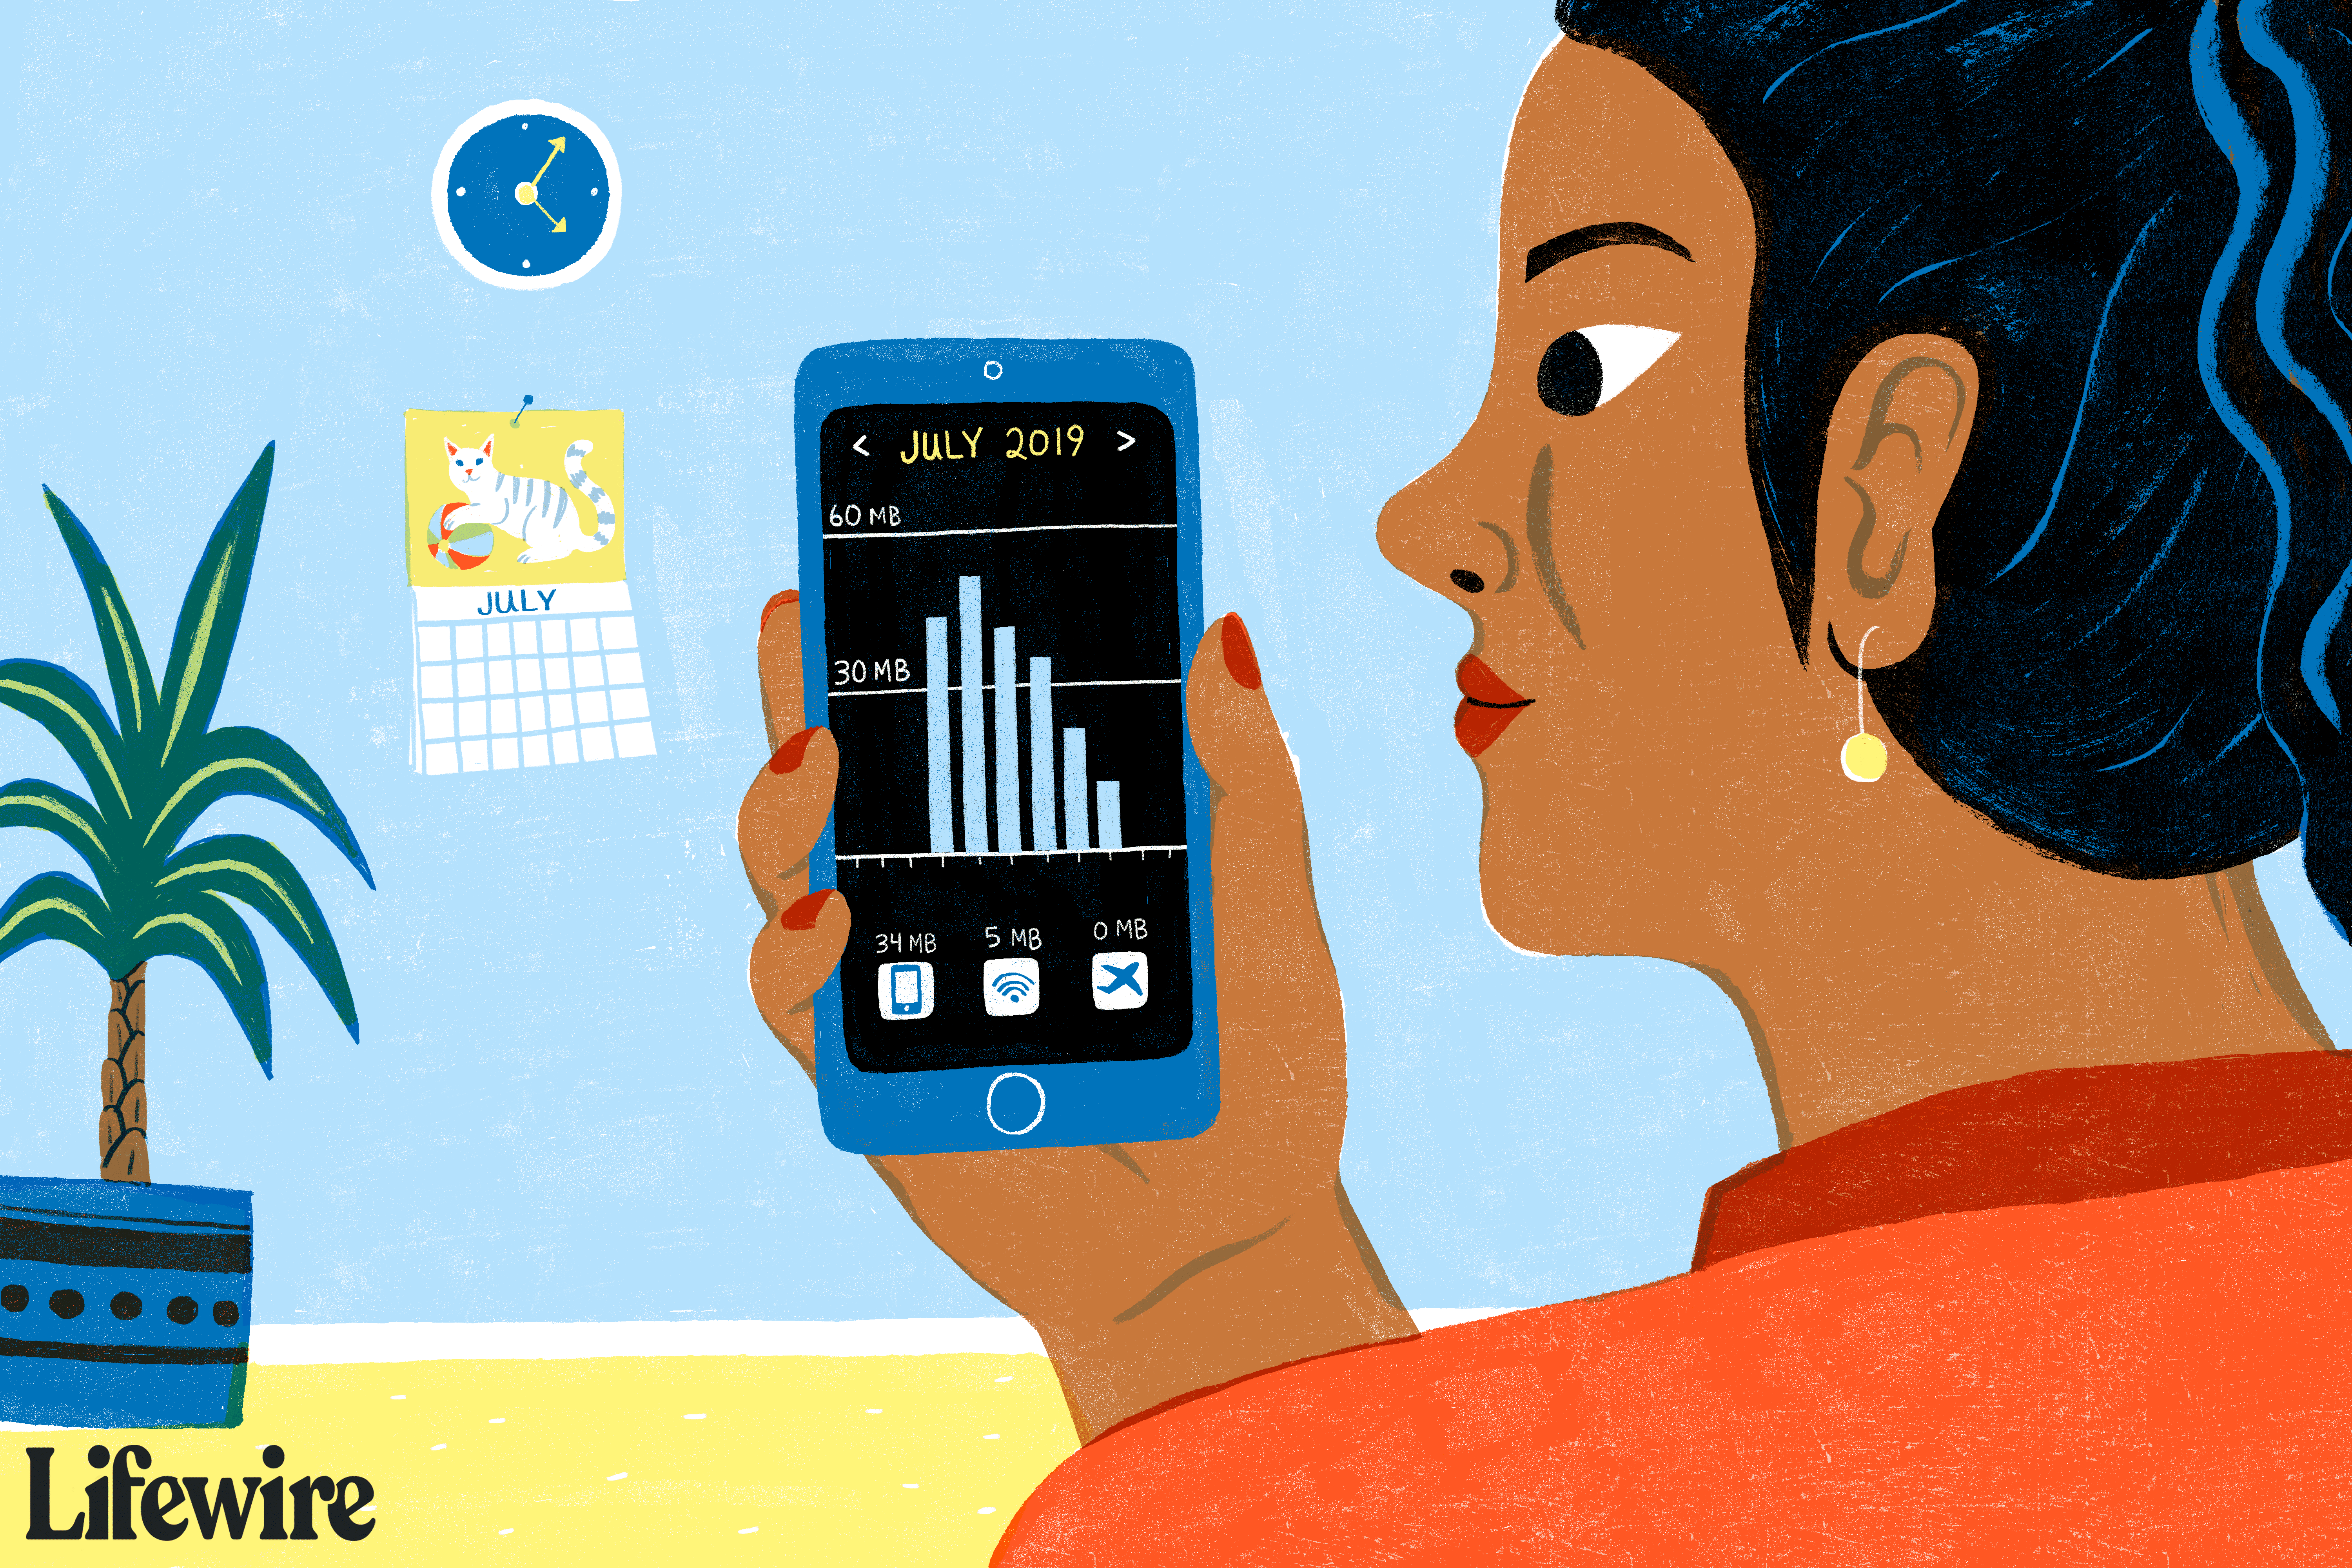 A person holding a smartphone and looking at a data usage app